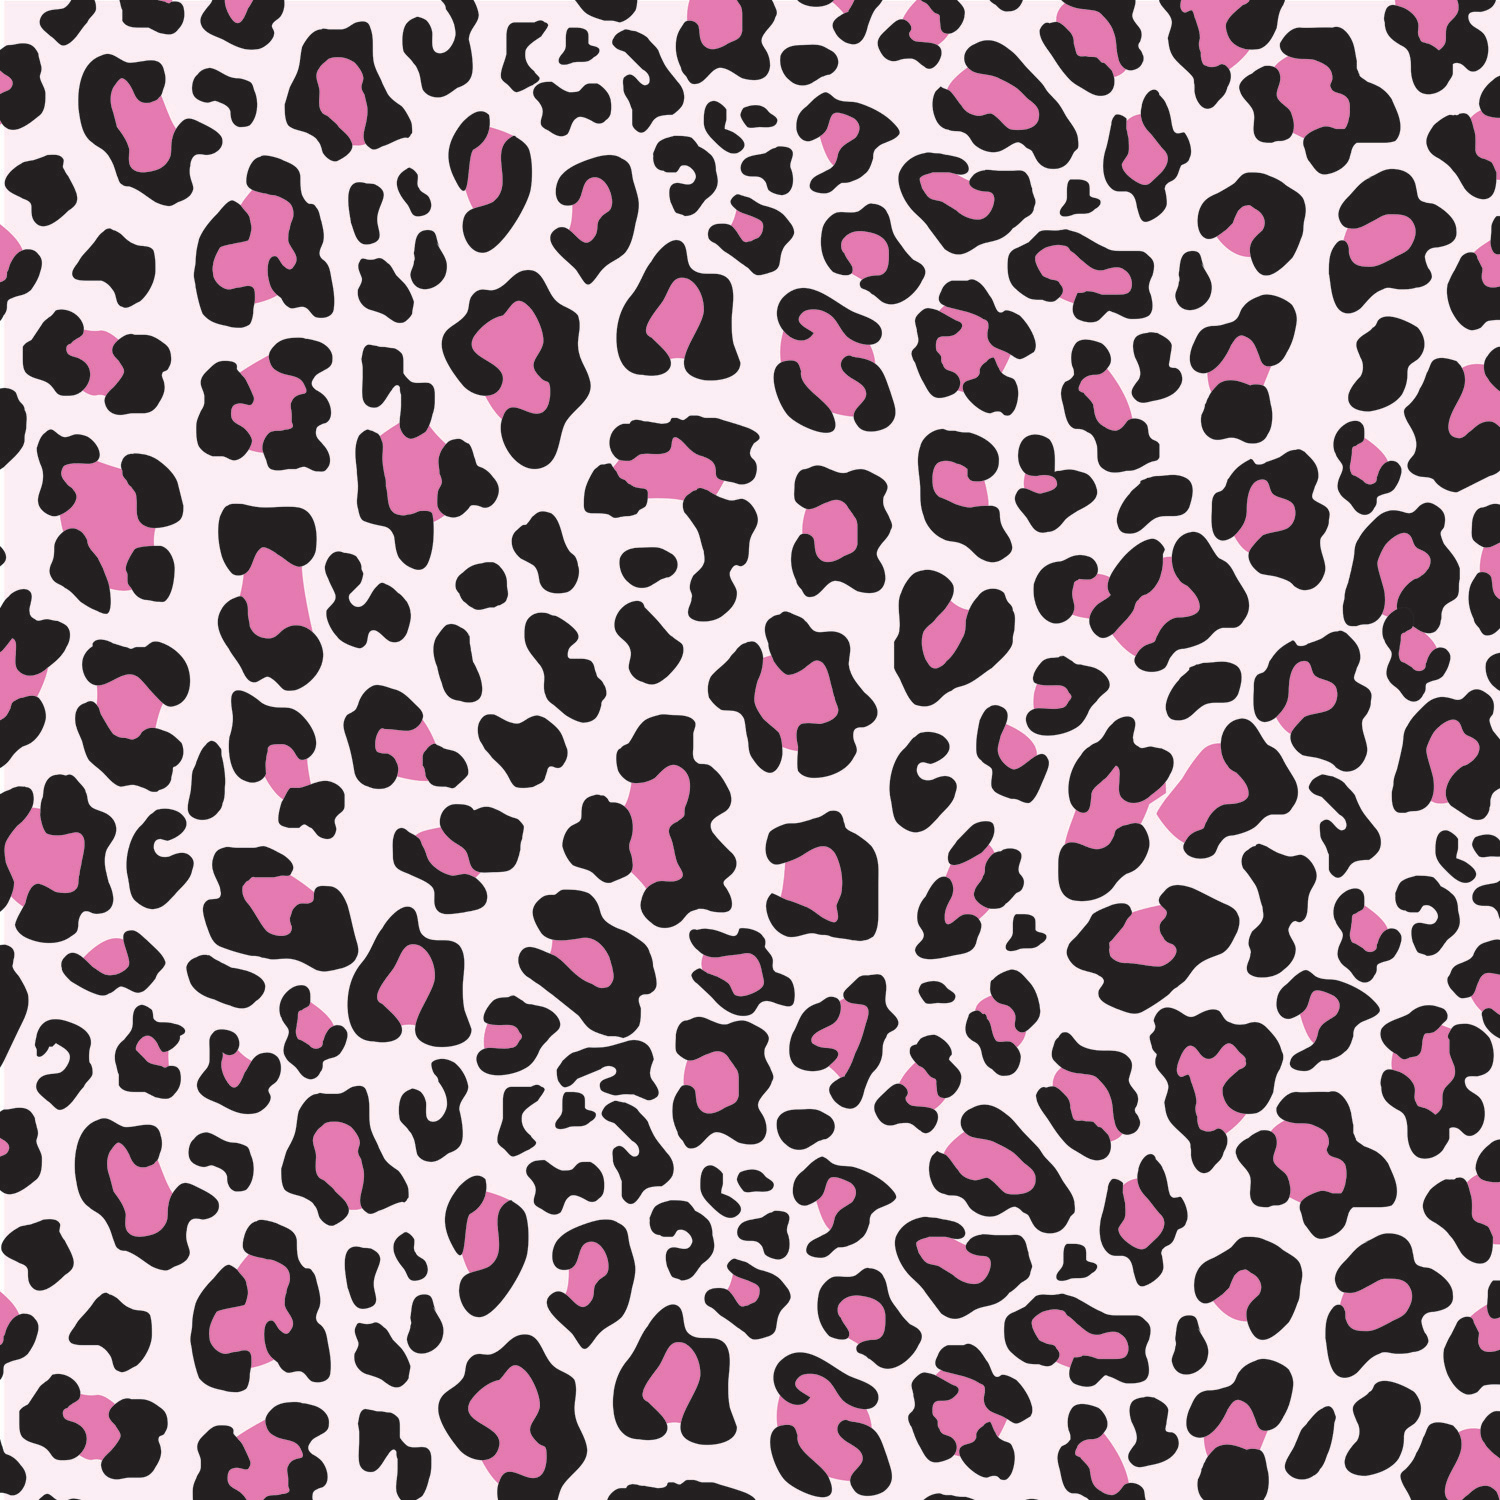 Animal Print Pink and Black Window Curtain for Girls #15 ...Light Pink Cheetah Print Background